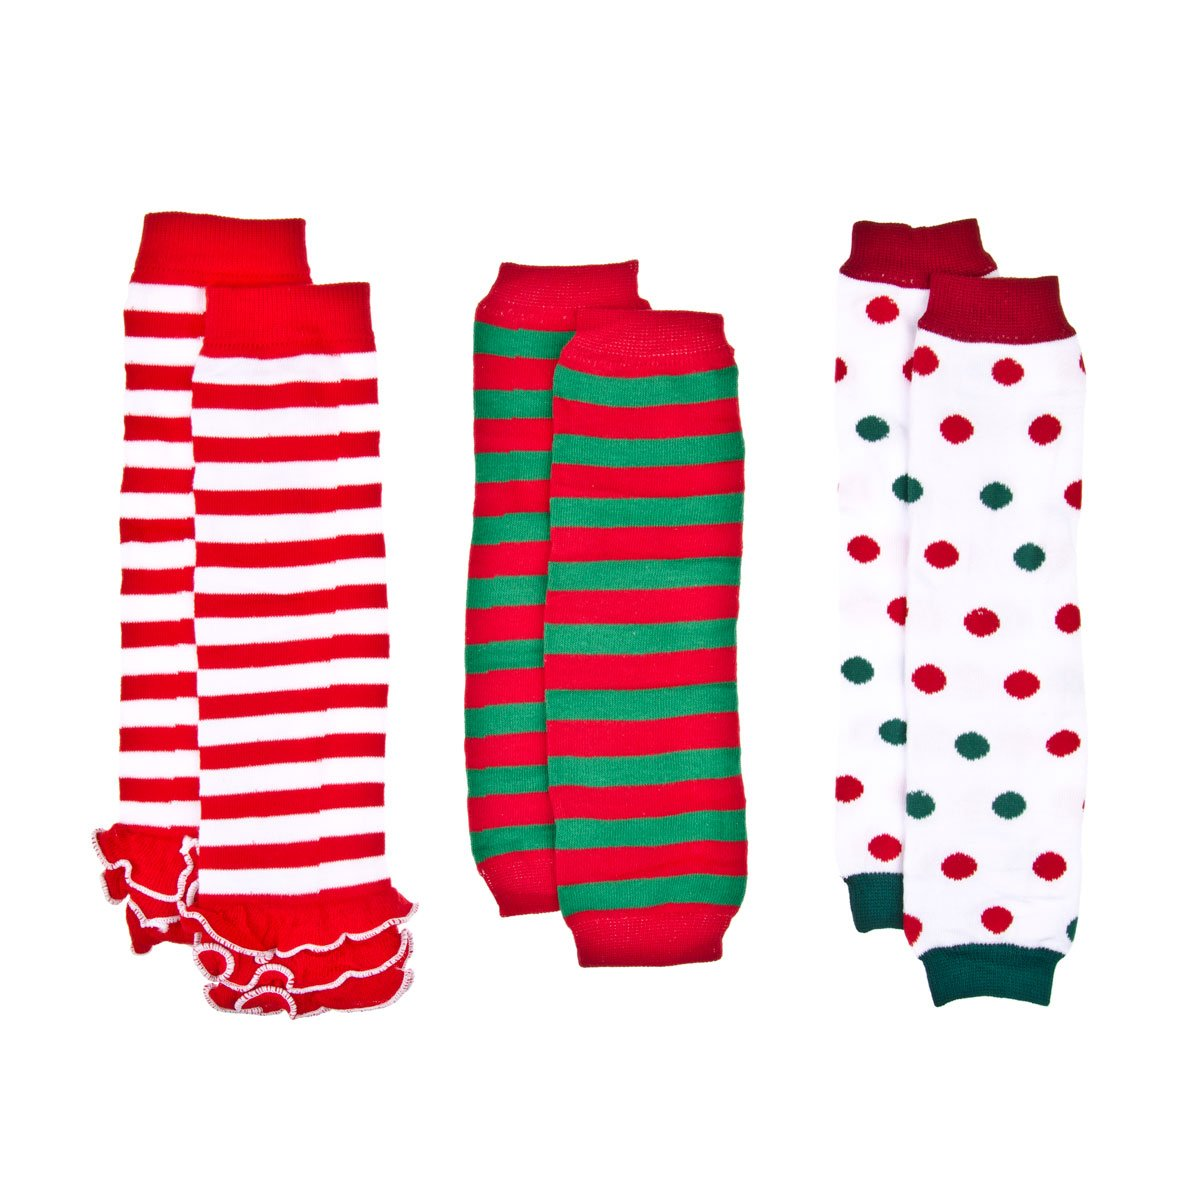 Ava's Christmas Baby Leg Warmers Set of 3 - Striped and Polka Dots crummy bunny BL-043